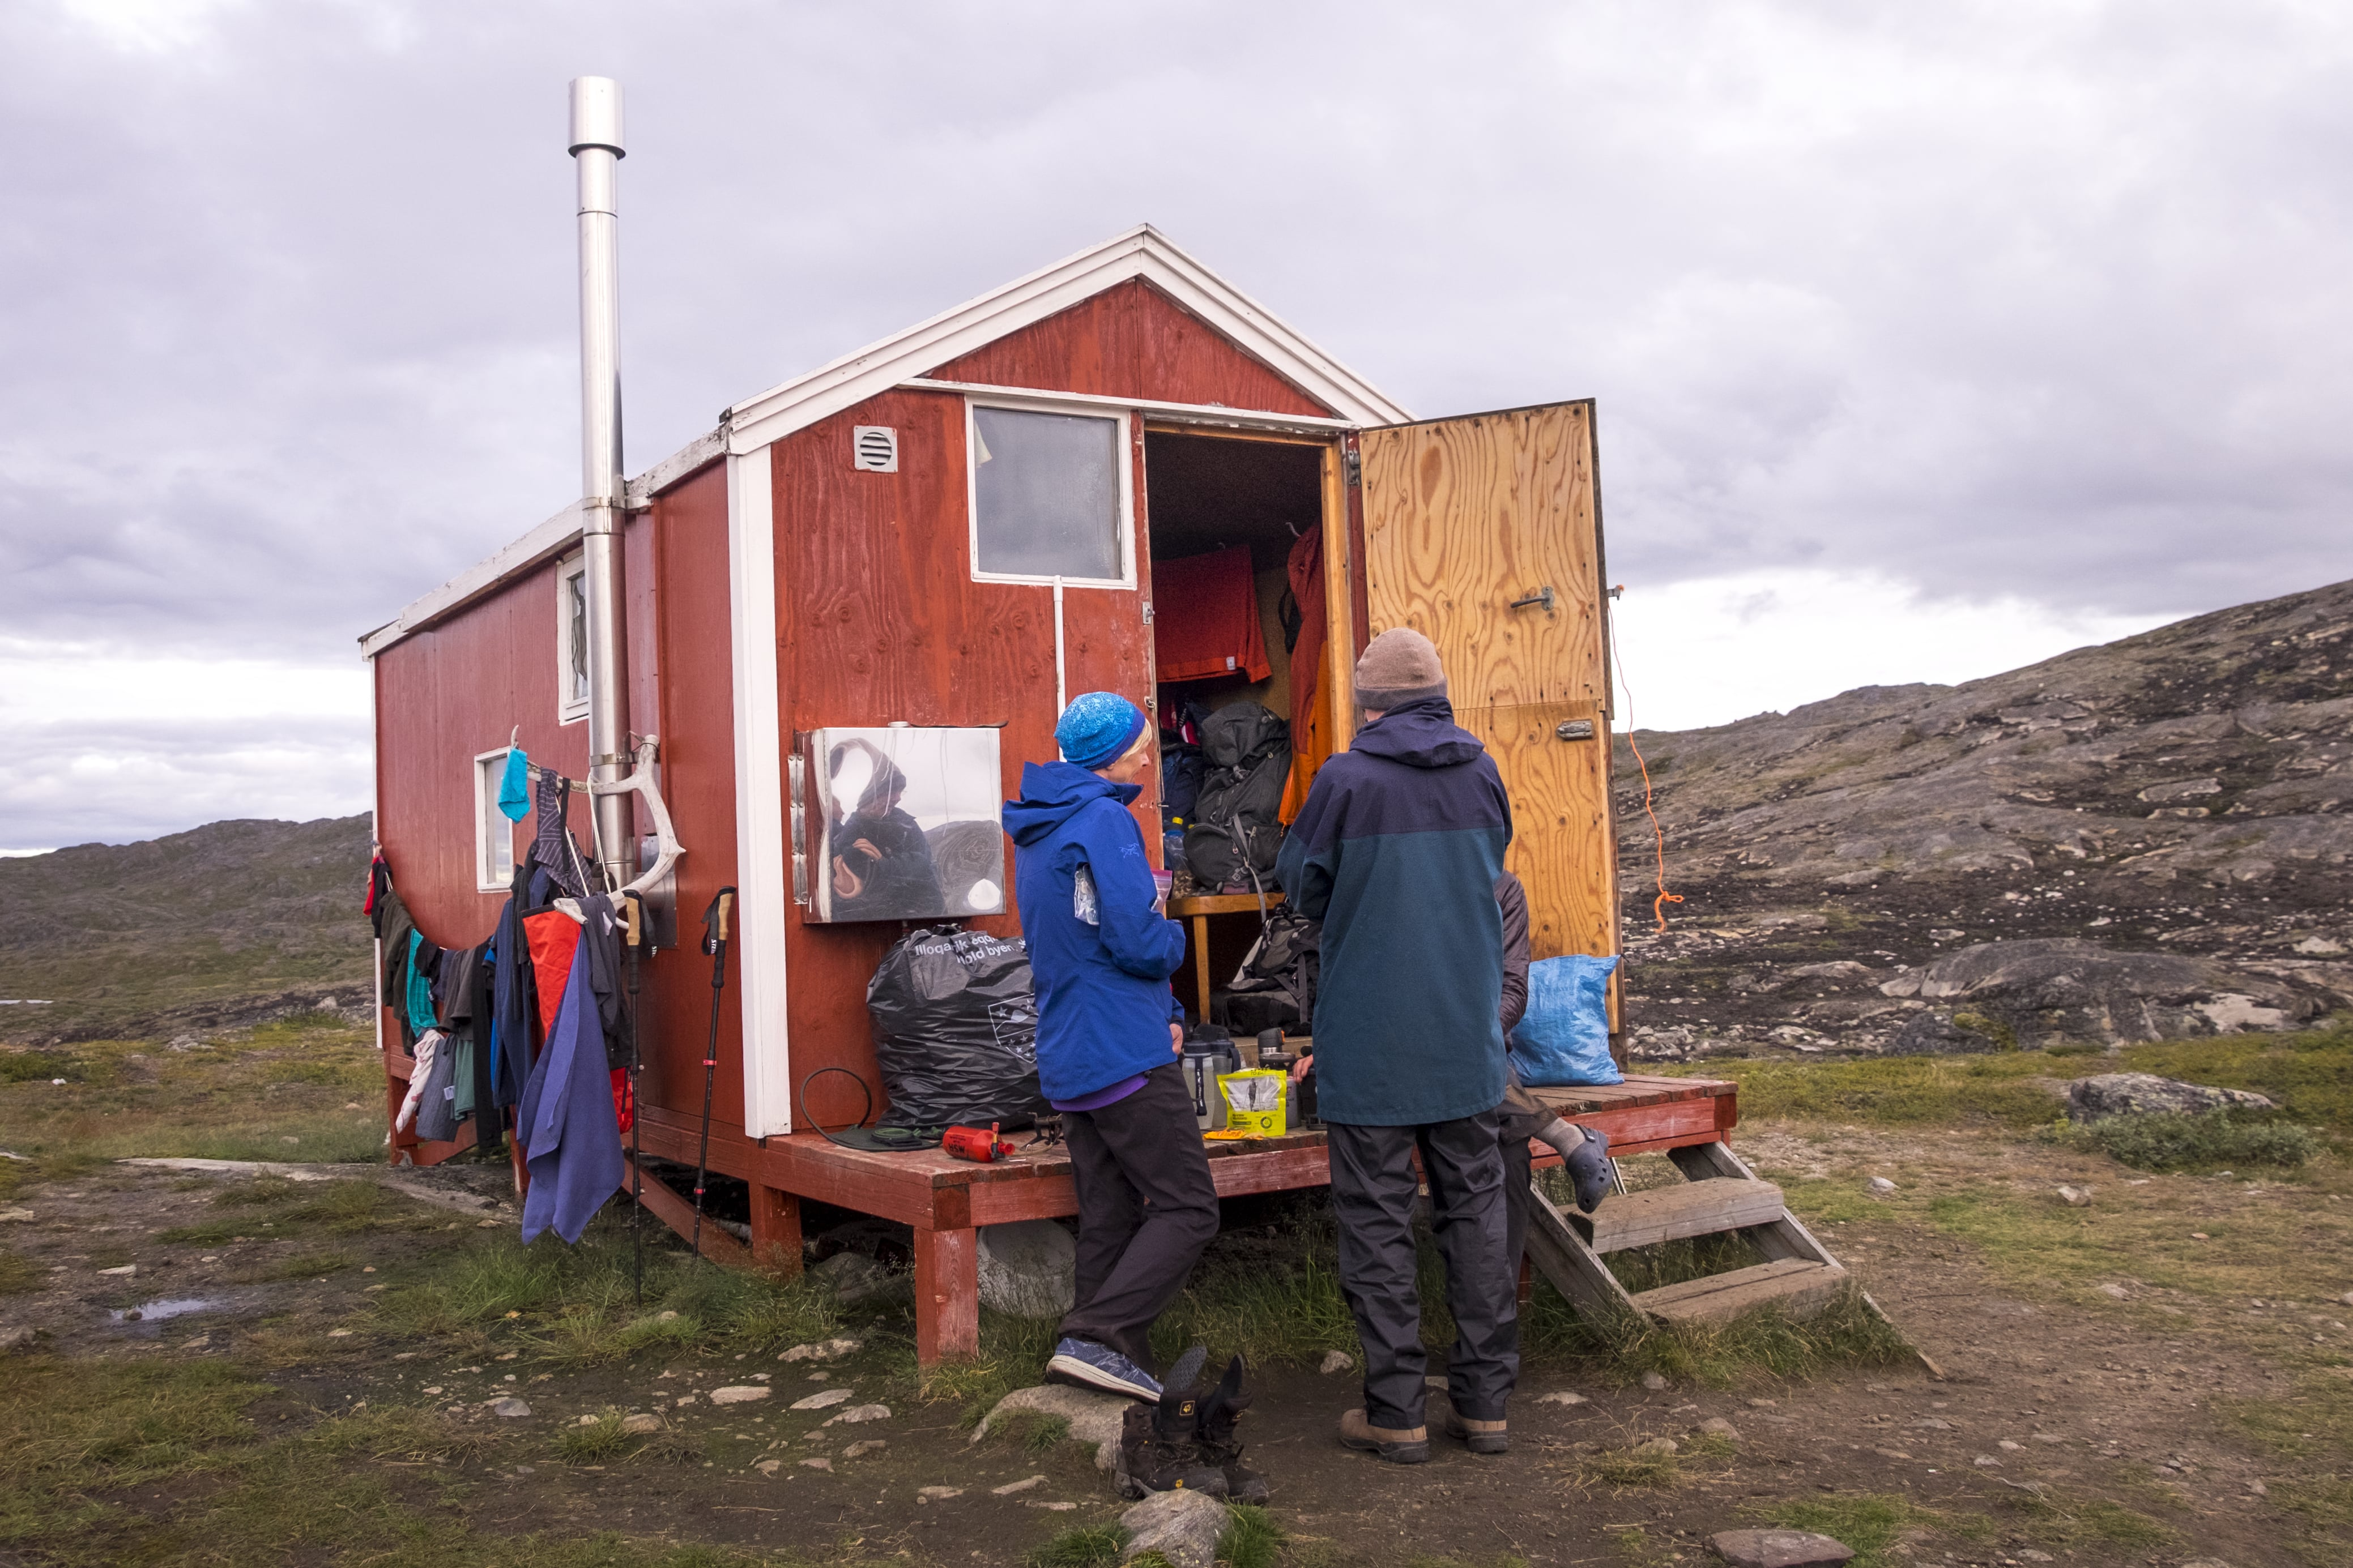 Hikers preparing food on the patio of Ikkattooq Hut - Day 3 of Arctic Circle Trail. Photo by Lisa Germany